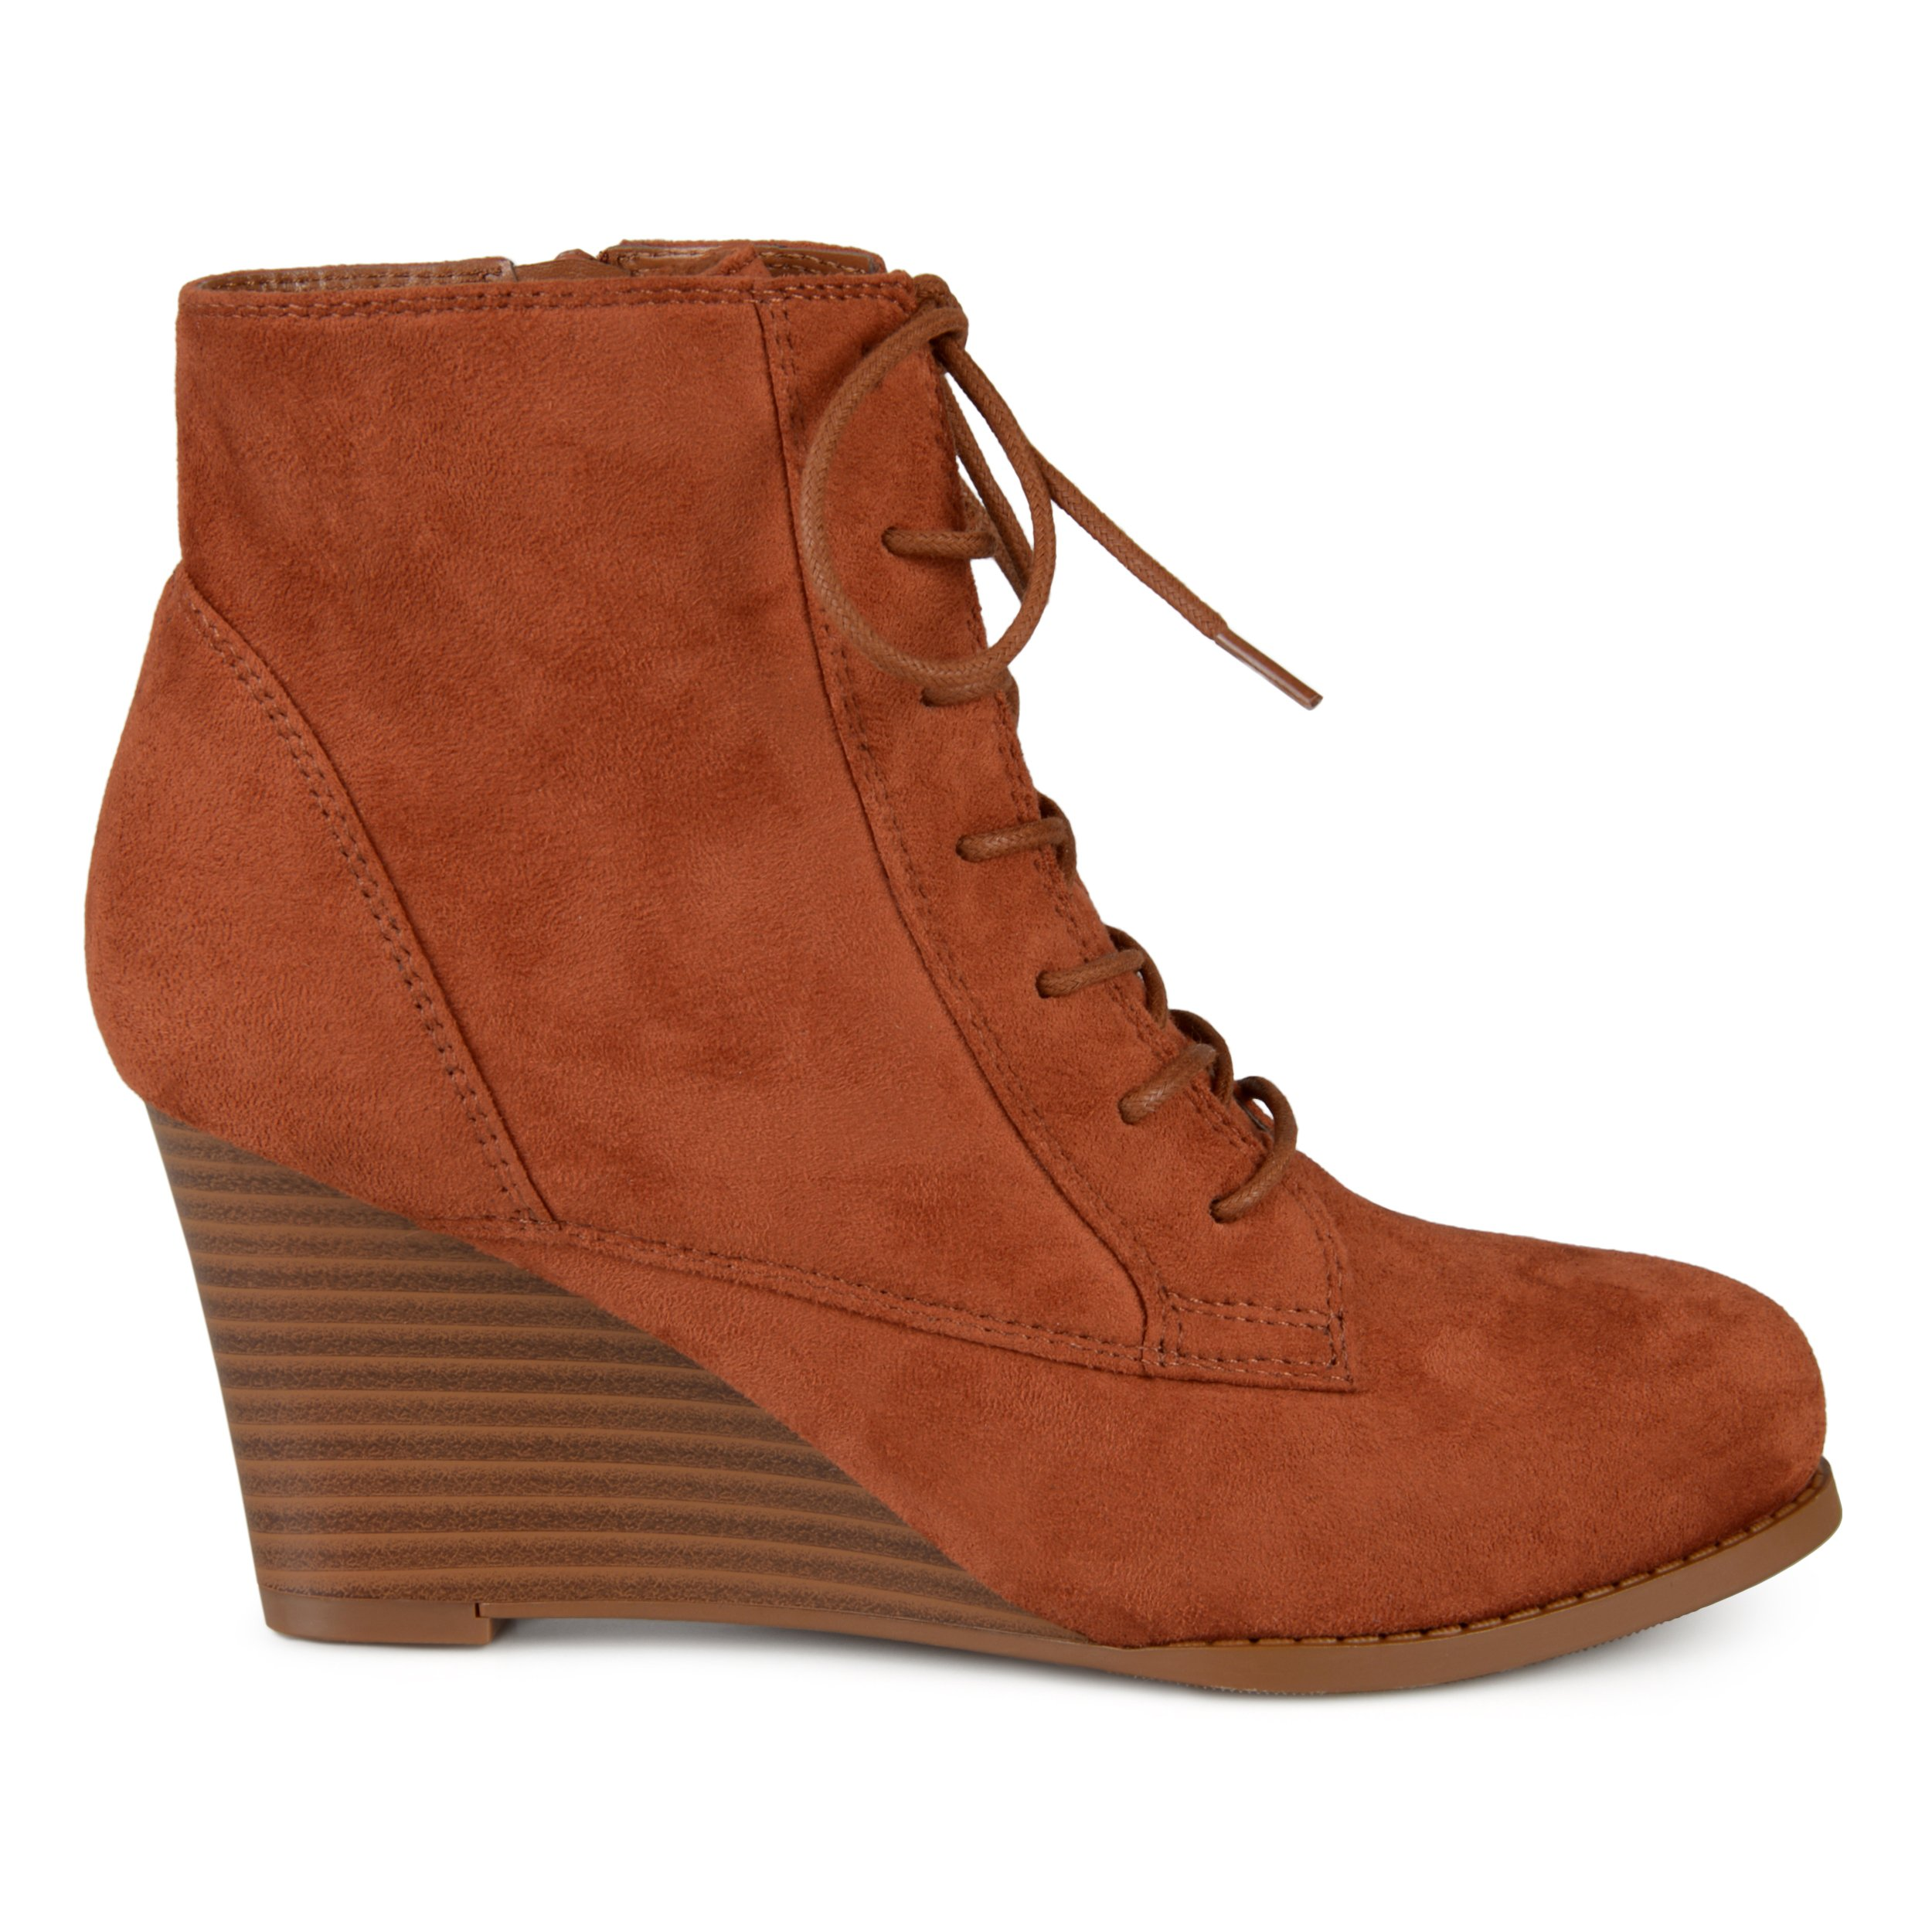 Brinley Co. Womens Lace-up Faux Suede Stacked Wedge Booties Rust, 7.5 Regular US